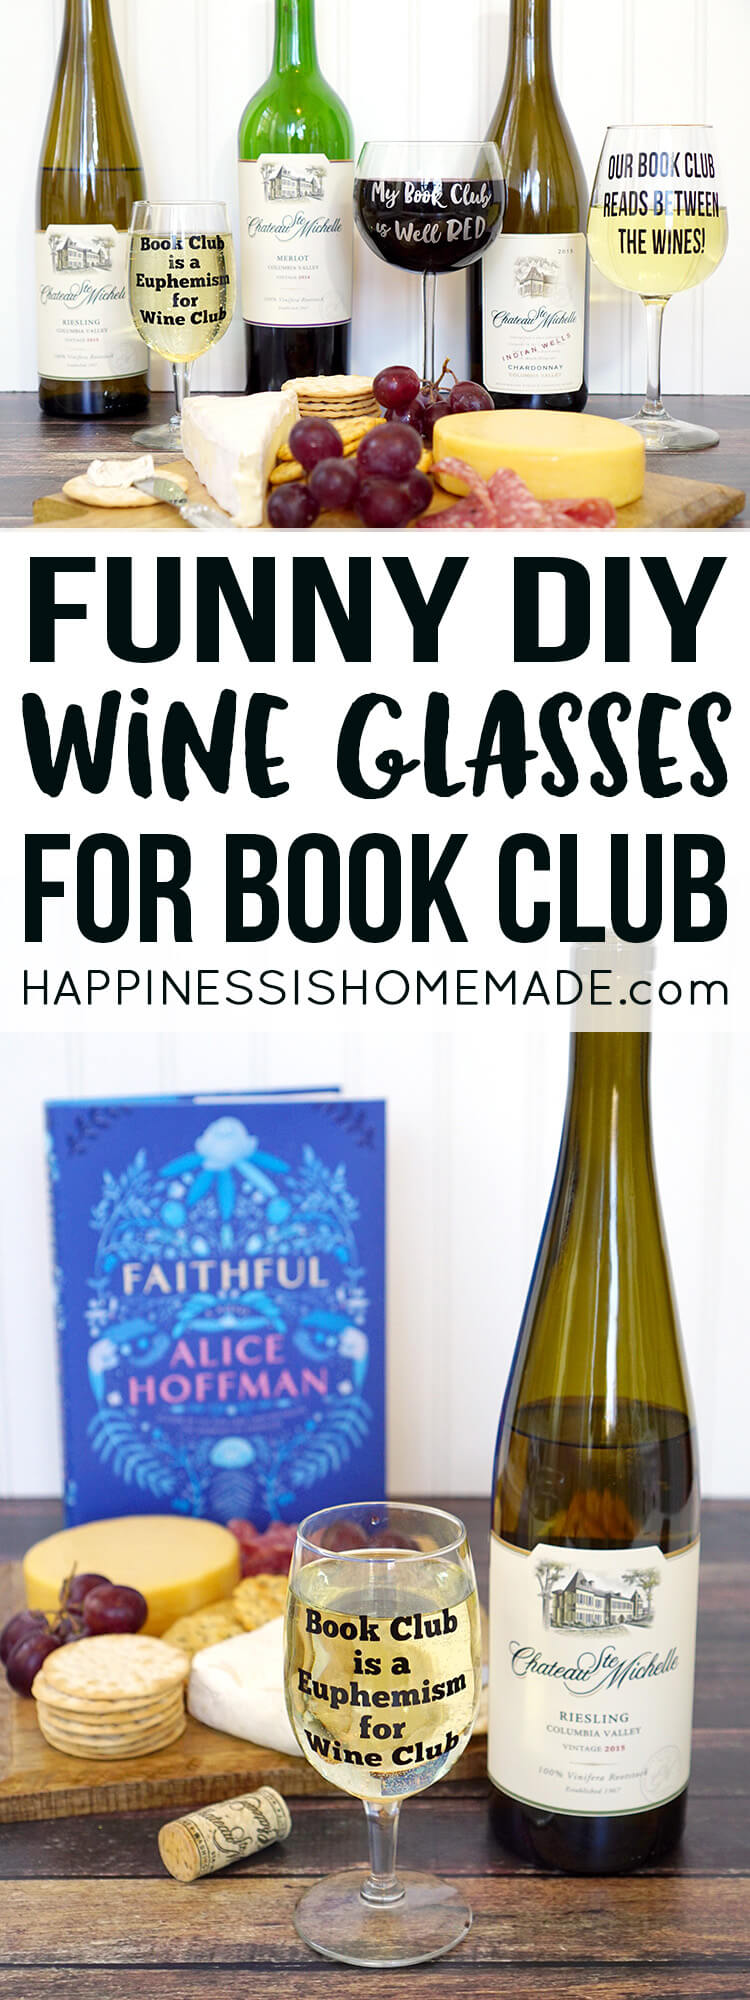 Funny (punny!) DIY Wine Glasses - perfect for book club gifts + 10 Must-Read Winter Book Club Favorites